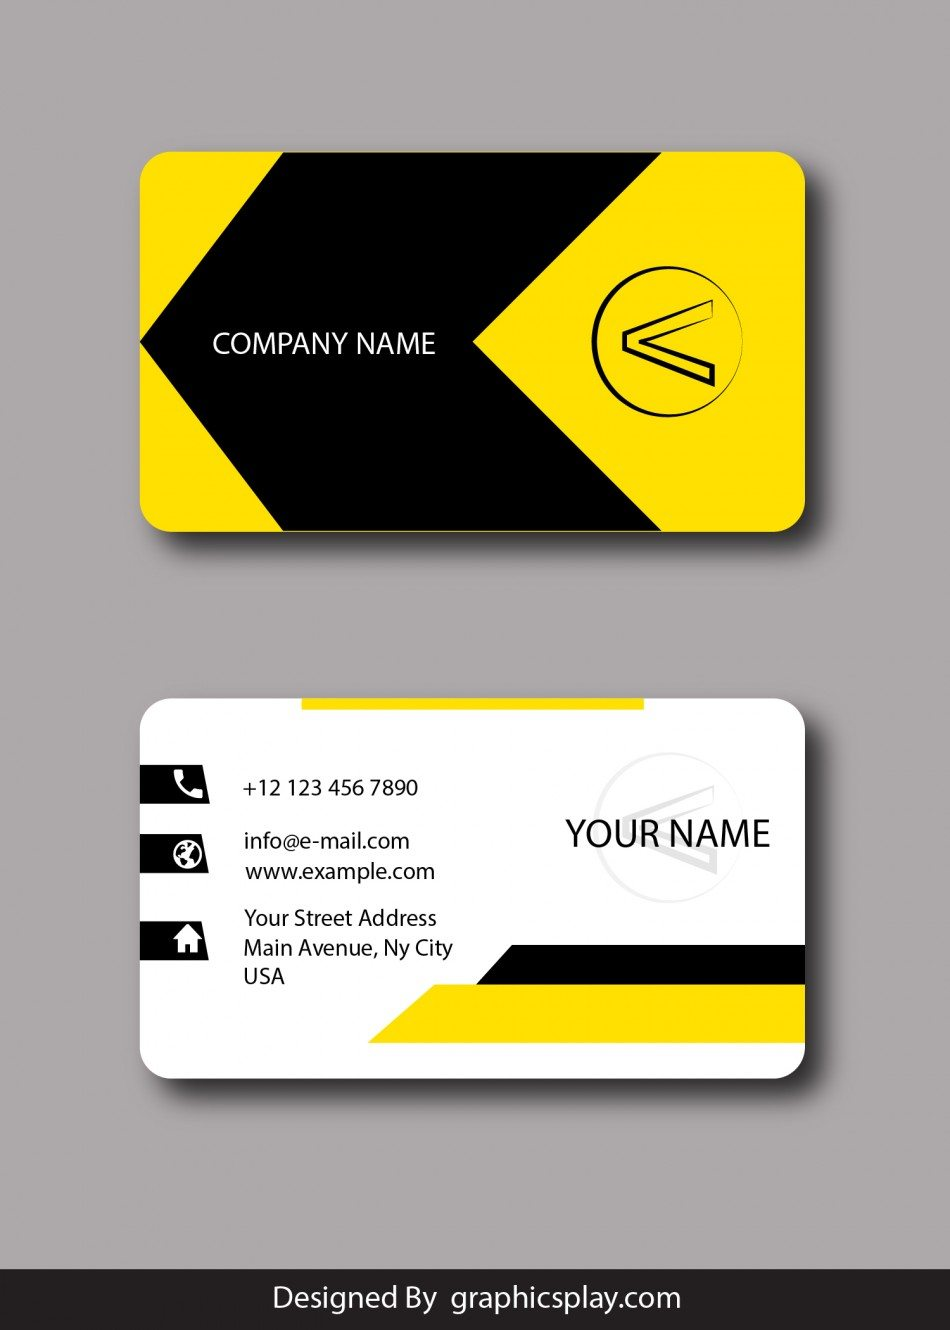 Business card design vector template id 1796 graphicsplay for New business cards